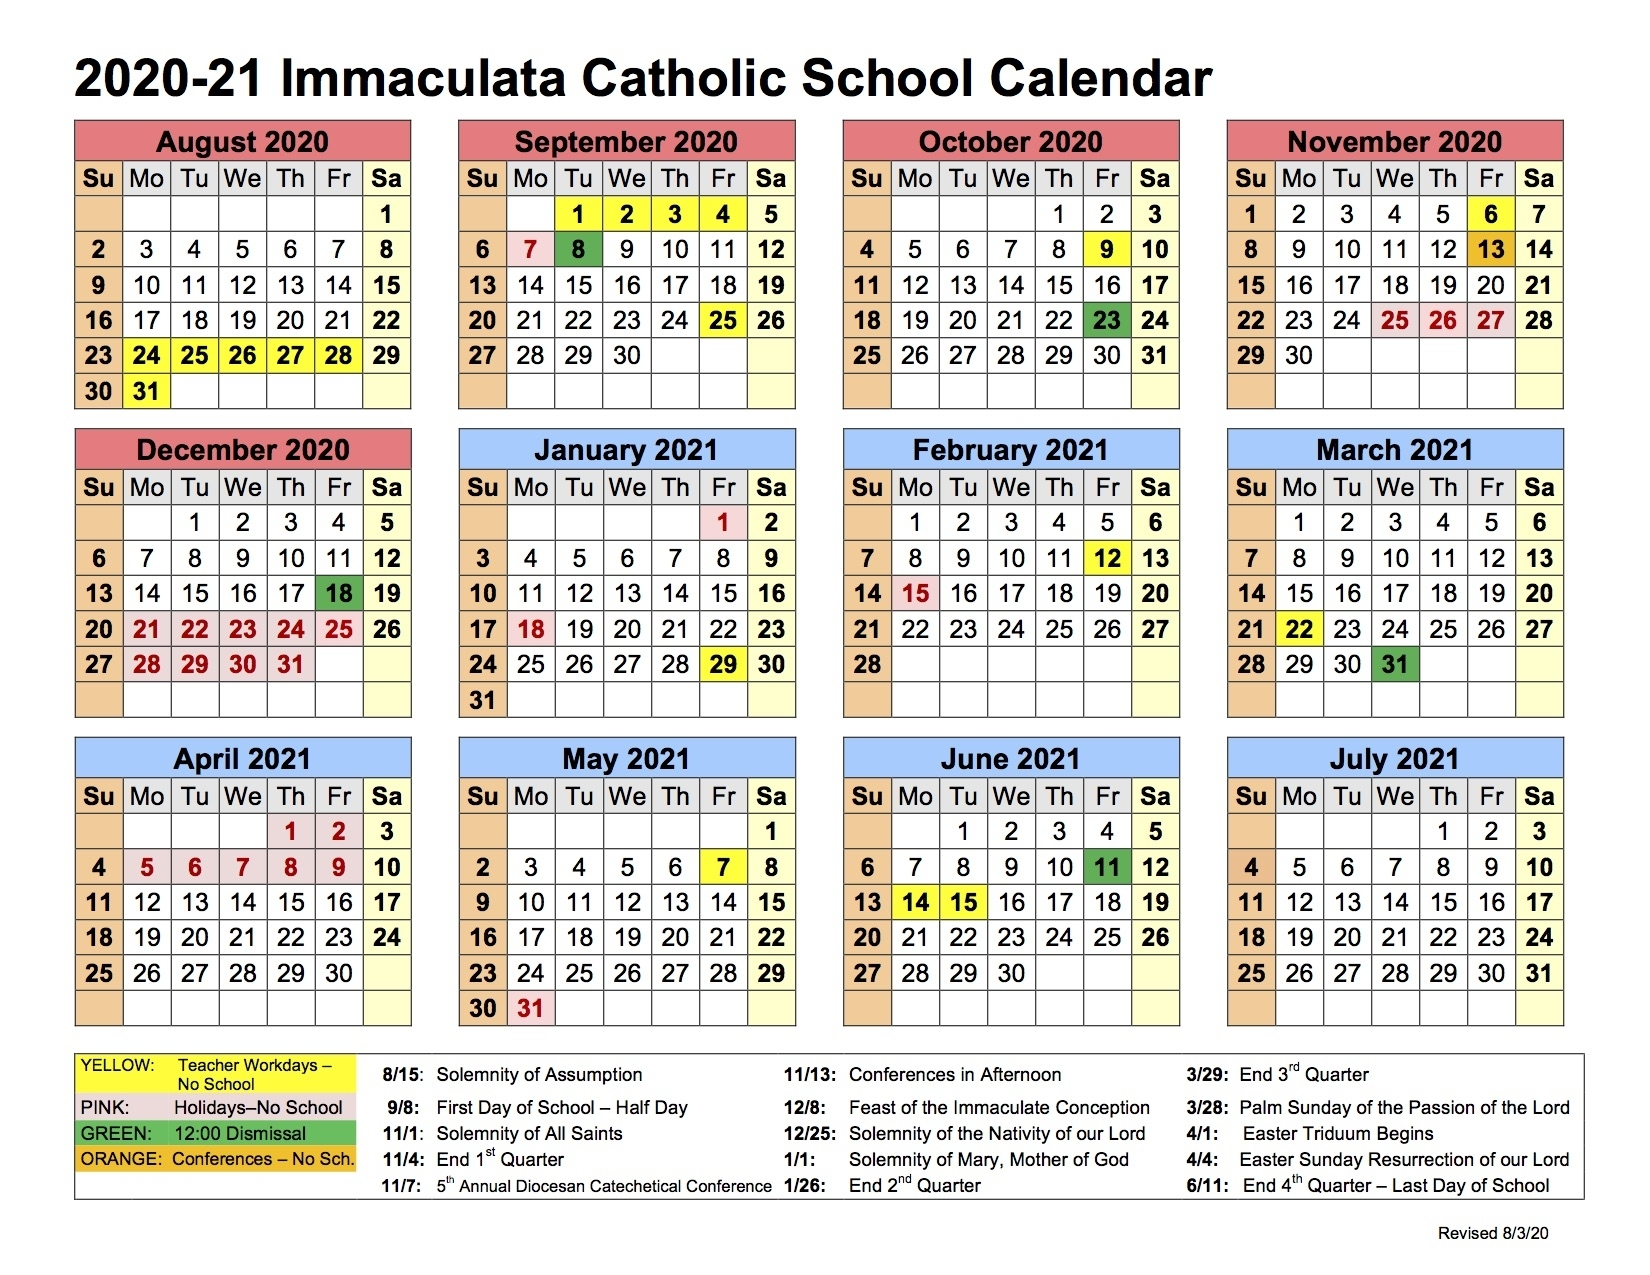 School Calendar & Uniform Regulations - Immaculata